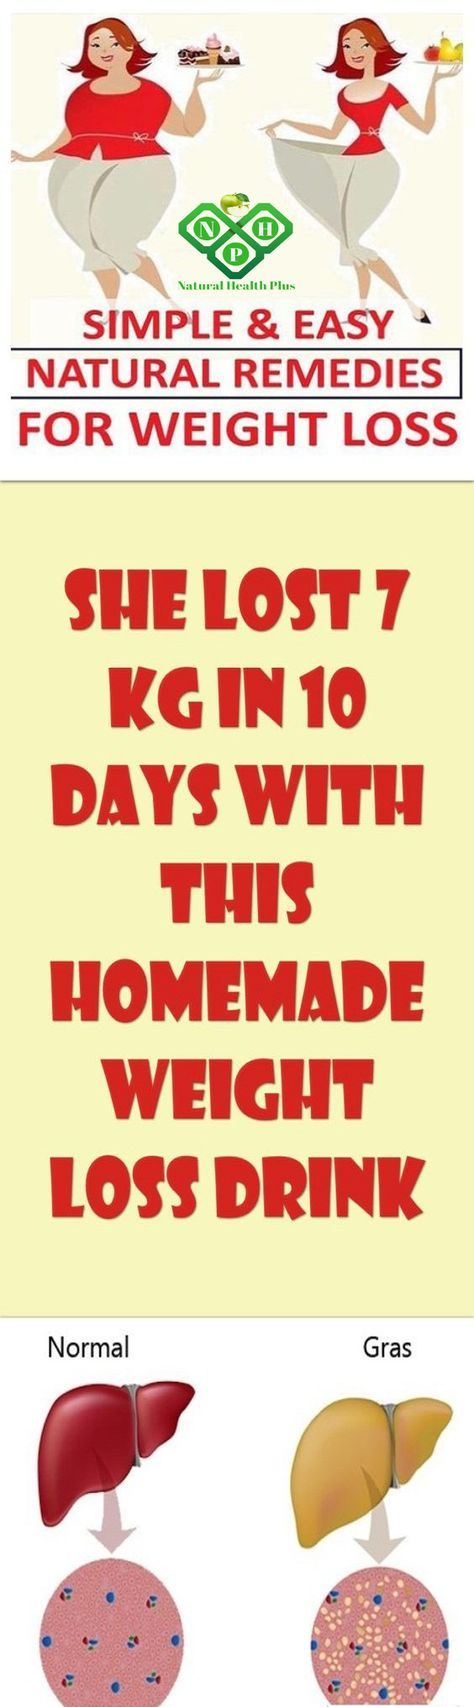 homemade weight loss drinks recipes, weight loss drinks in urdu, drinks to lose weight in a week, what can i drink to lose weight fast home remedies, homemade weight loss drinks detox, weight loss drink lemon mint cucumber, what to drink to lose weight overnight, best thing to drink to lose weight,